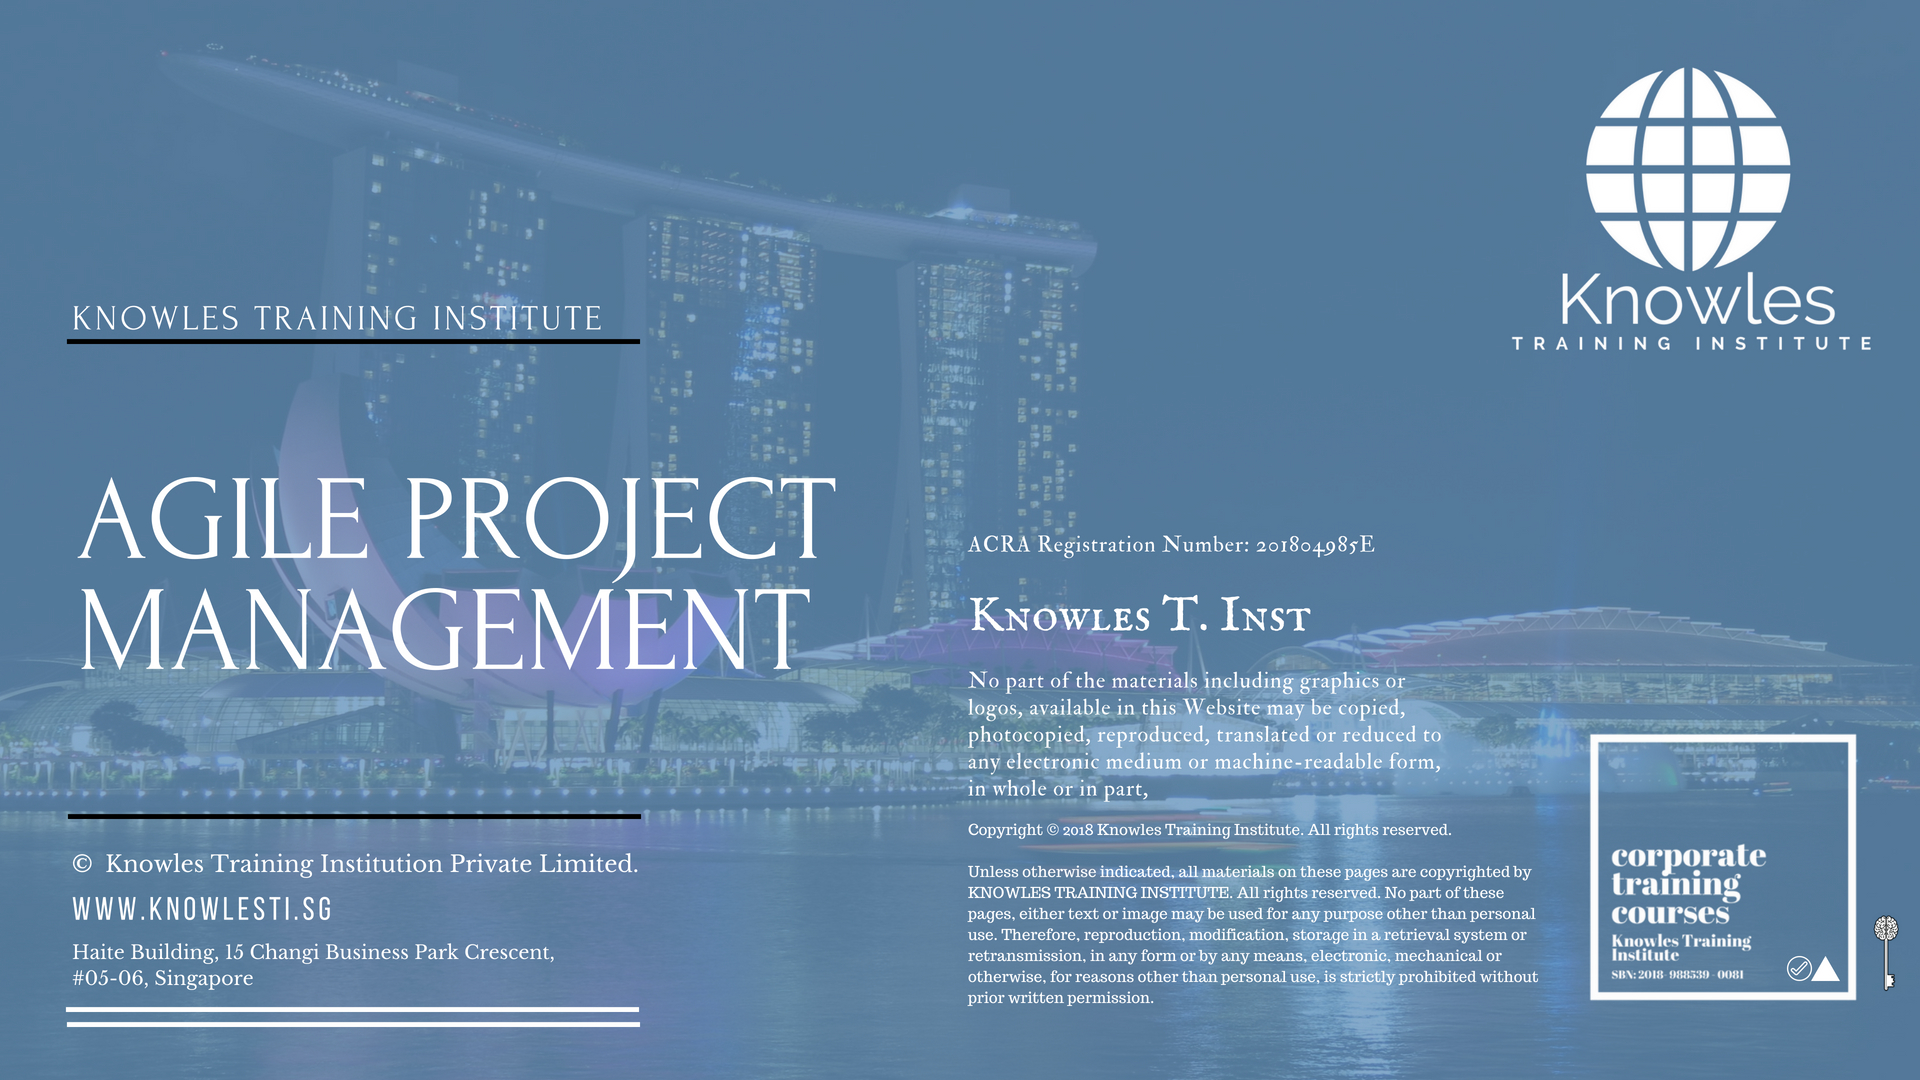 Agile Project Management Training Course In Singapore Knowles